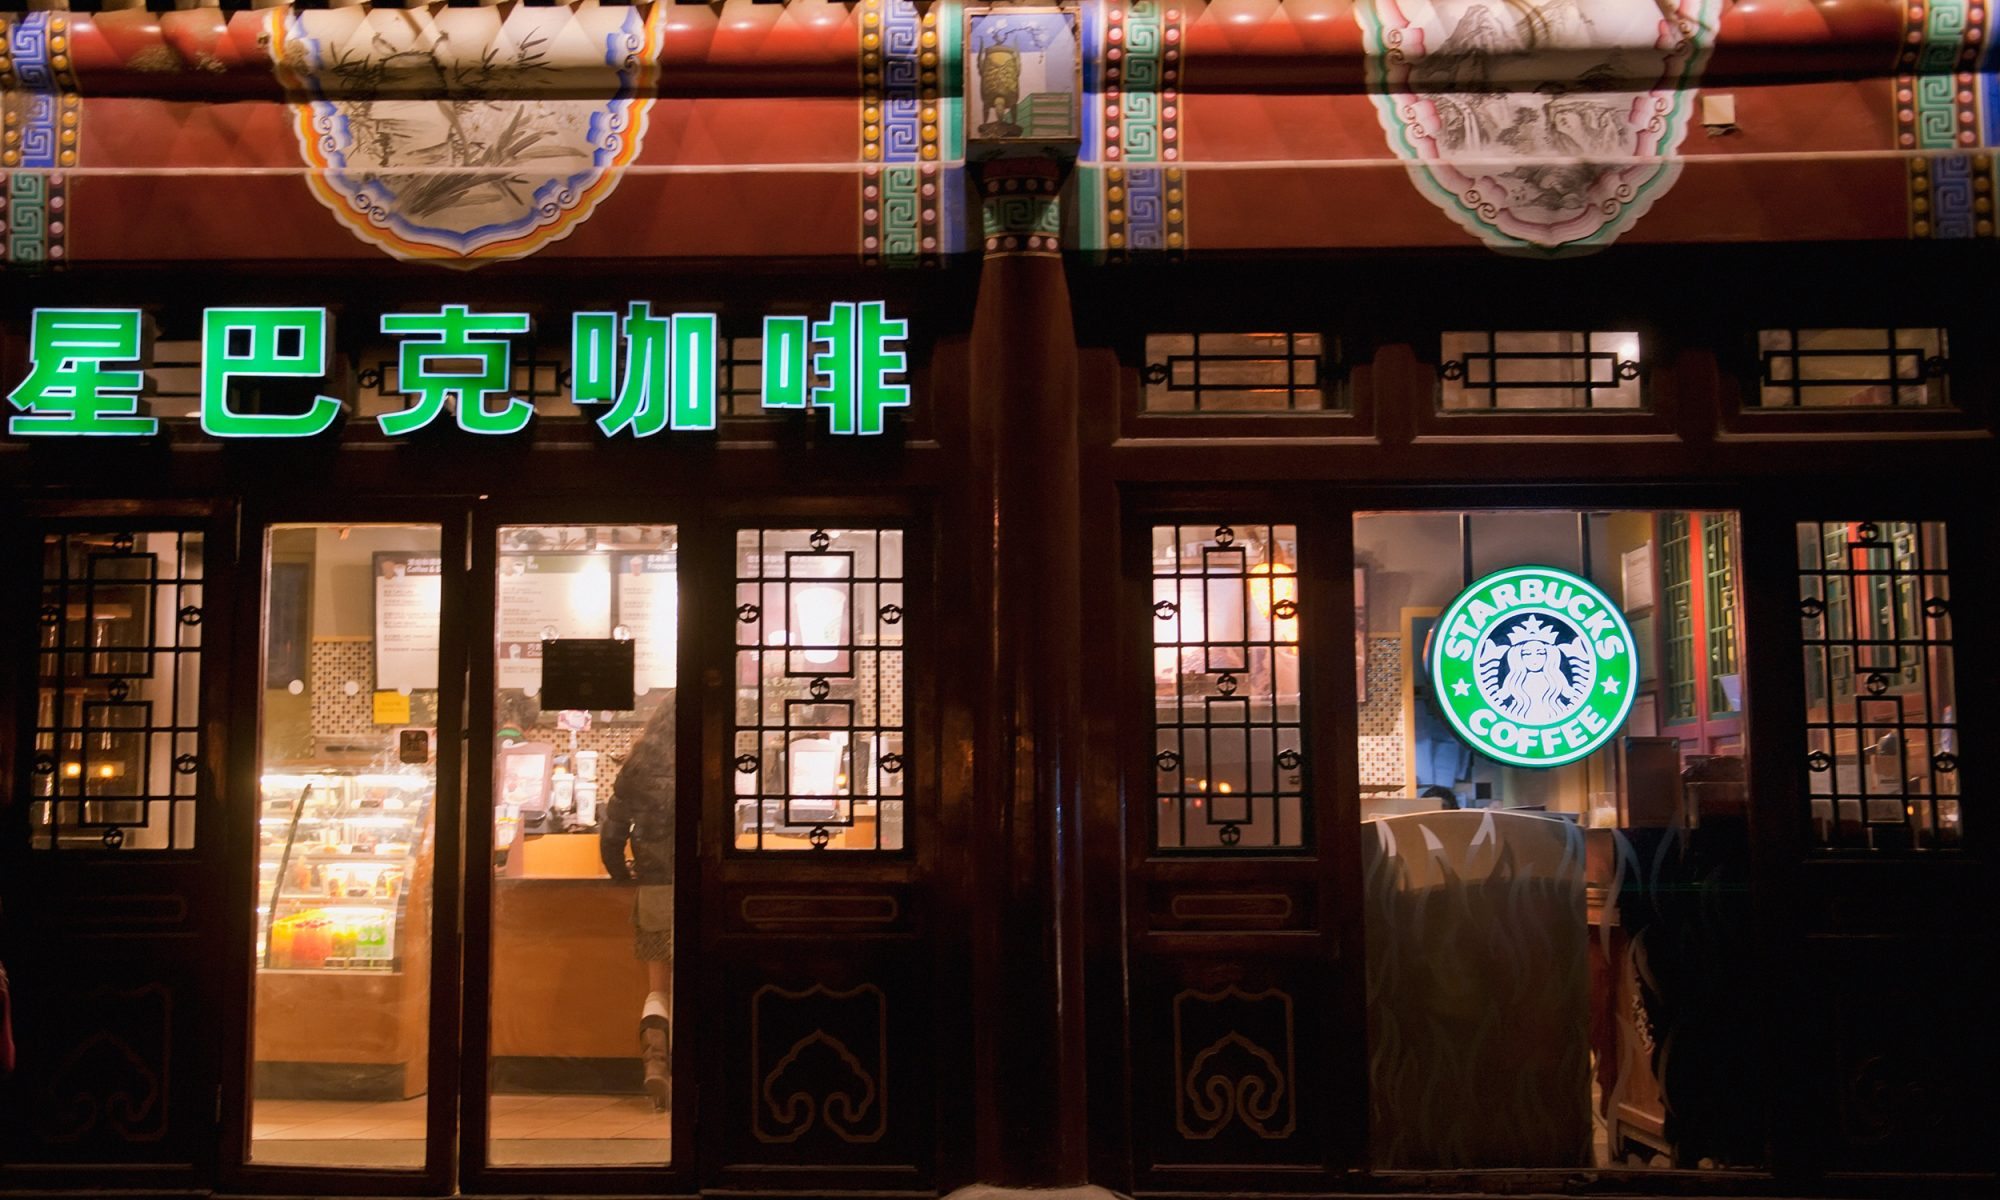 EC: Starbucks Could Become Bigger Than McDonald's in a Few Years